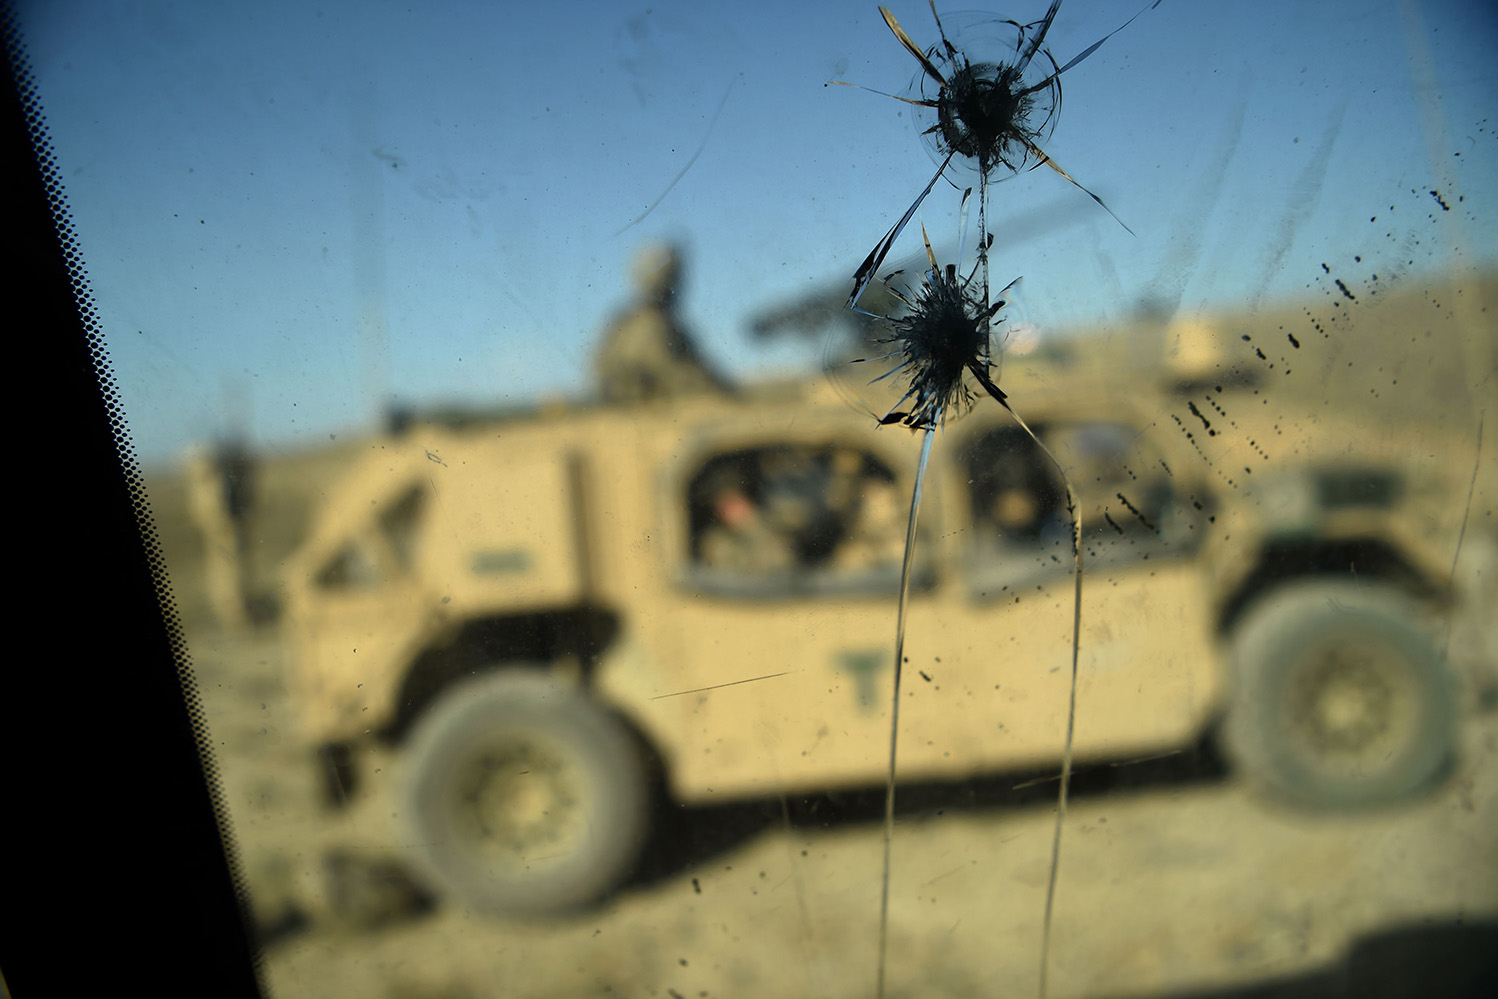 U.S. Army soldiers are seen through a cracked window of an armed vehicle at a checkpoint in eastern Nangarhar province, Afghanistan, on July 7, 2018.